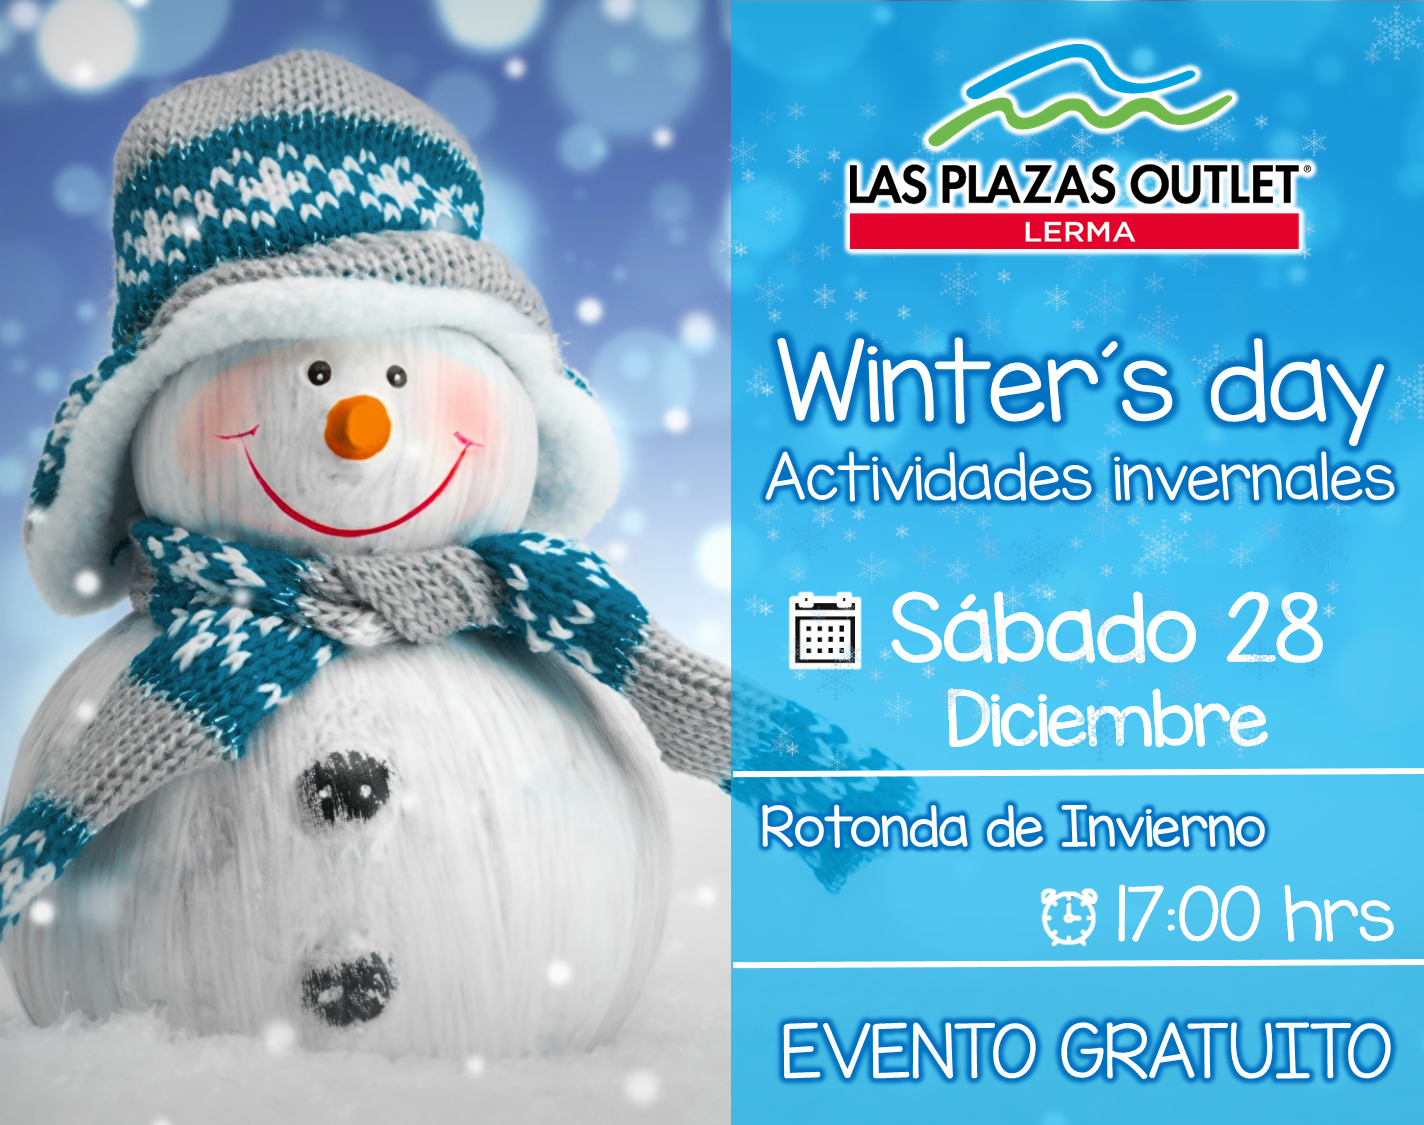 Las Plazas Outlet Lerma - Winters day